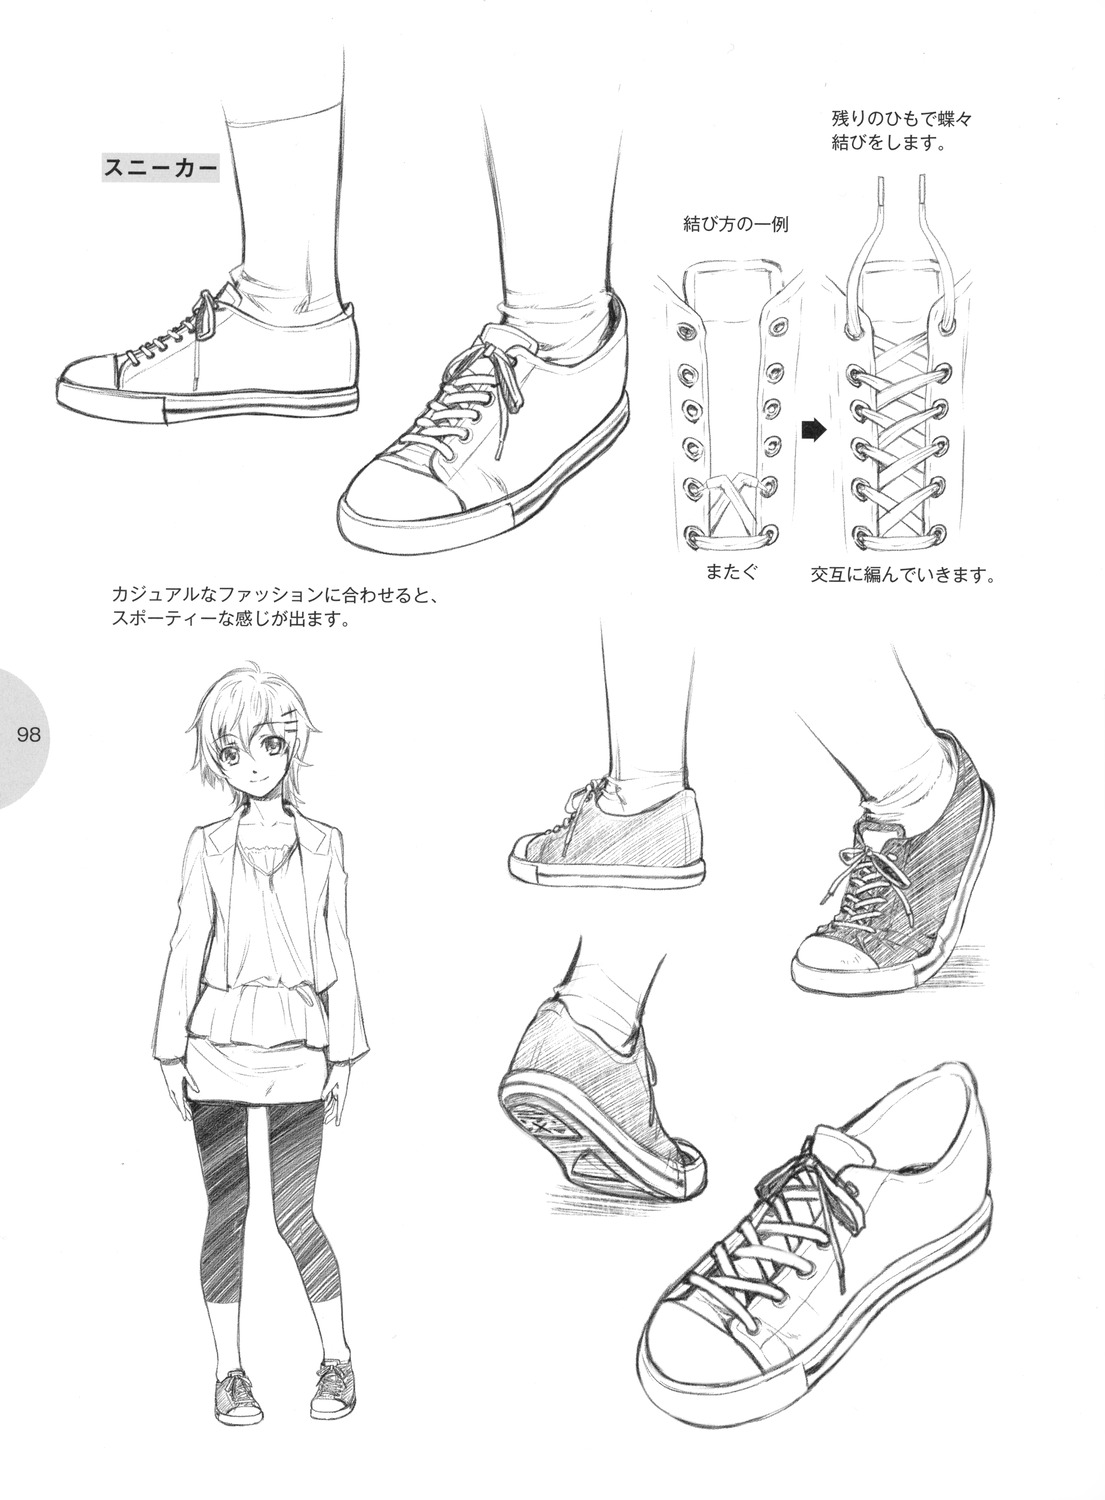 Drawn shoe anime character  部屋 and from Shoes